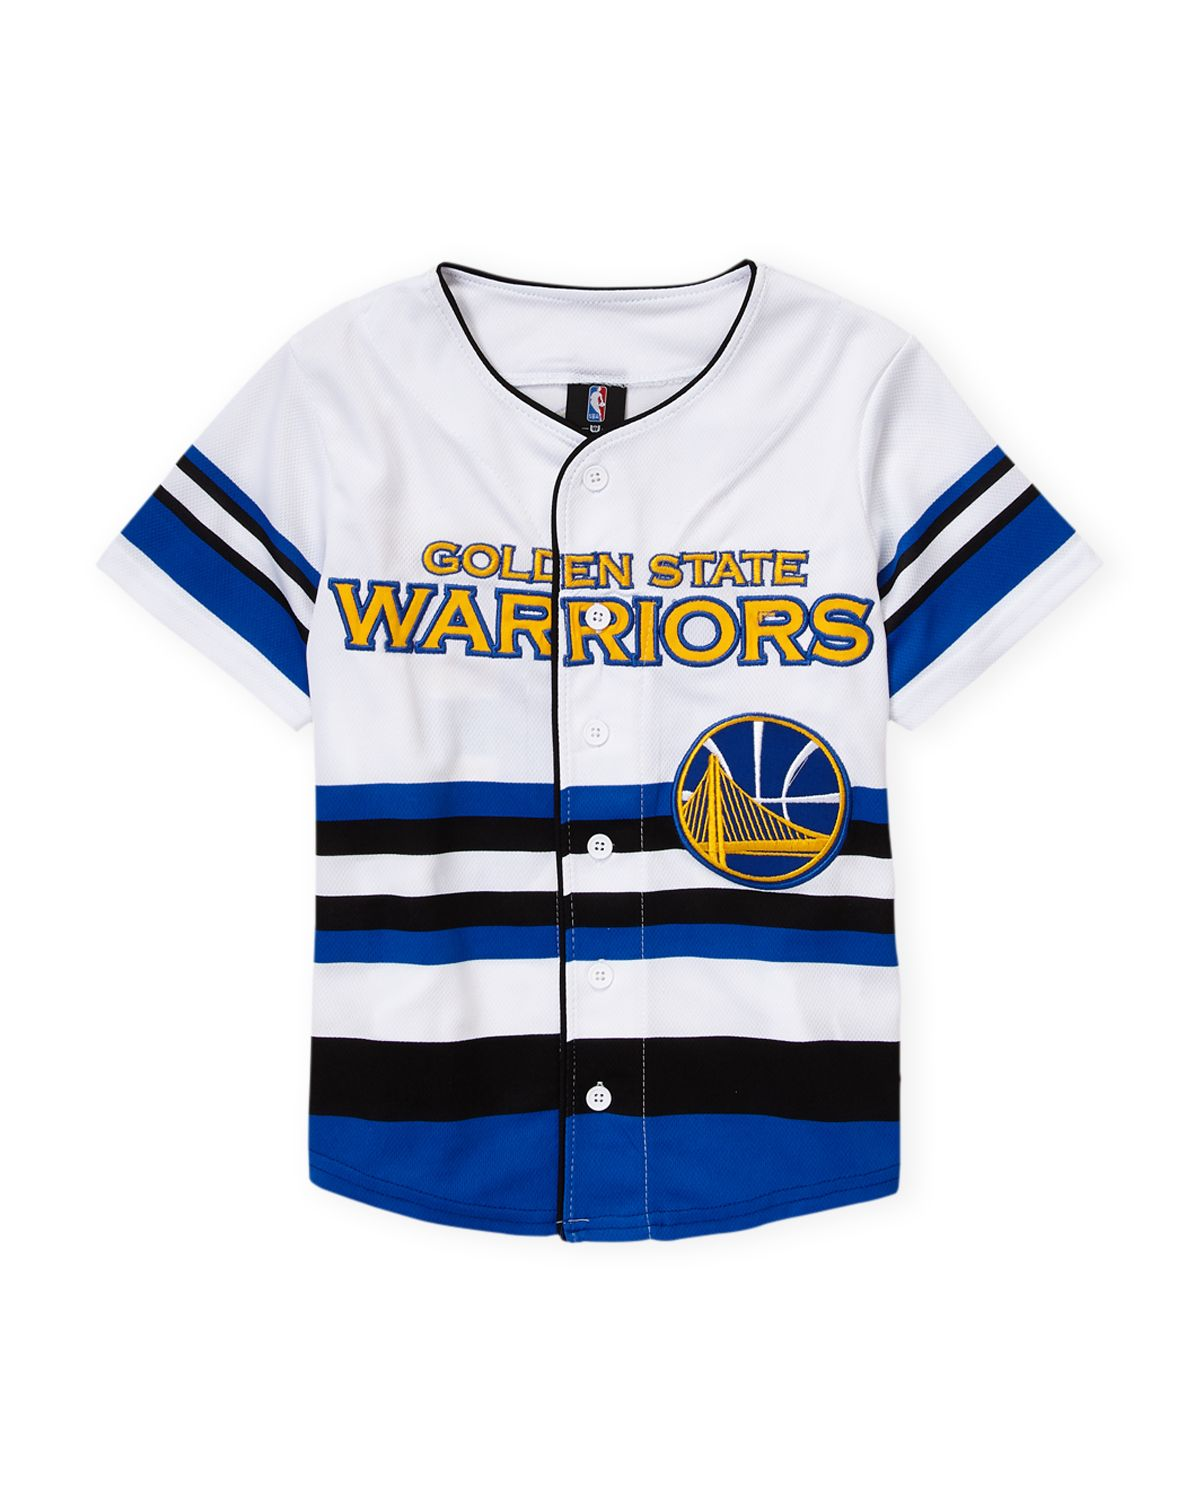 reputable site c315e e44b2 Unk (Boys 8-20) Golden State Warriors Short Sleeve Jersey ...